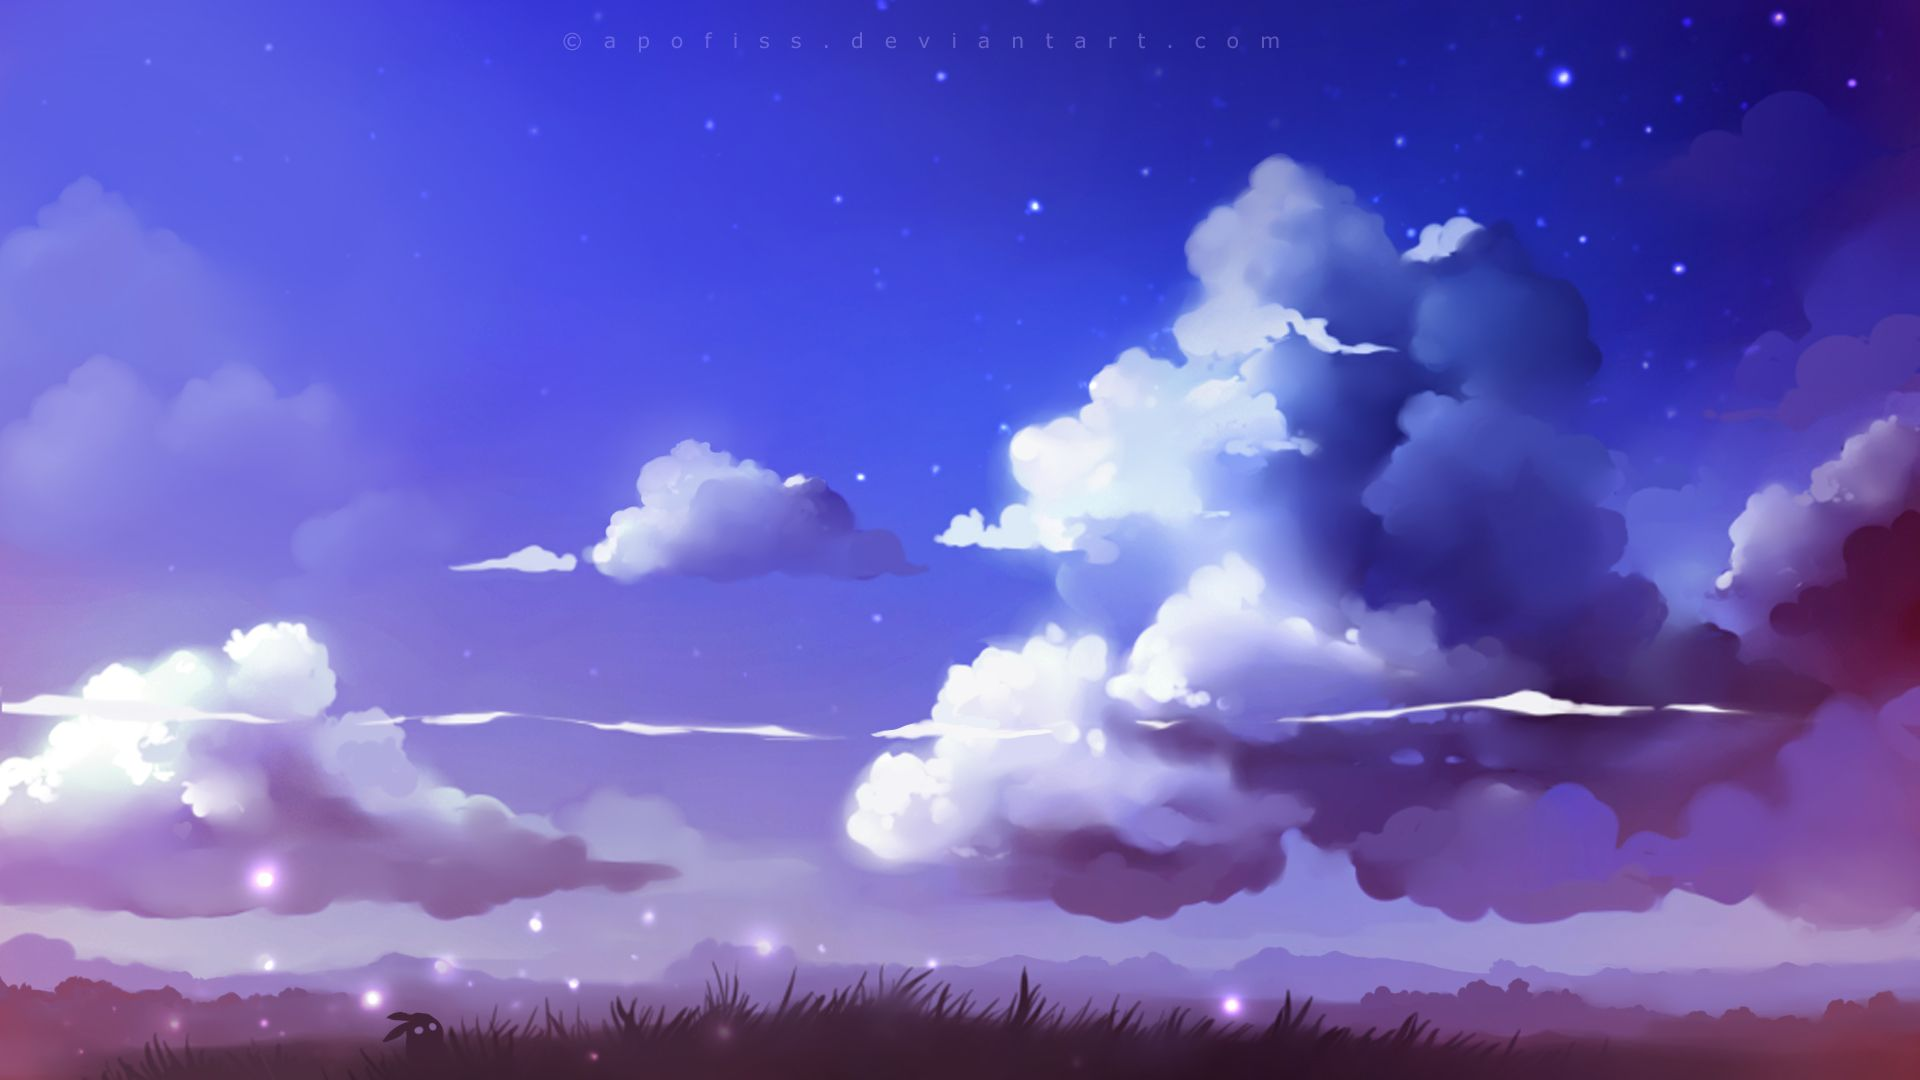 Cloud Drawing Aesthetic Anime Anime Scenery Aesthetic anime clouds wallpaper